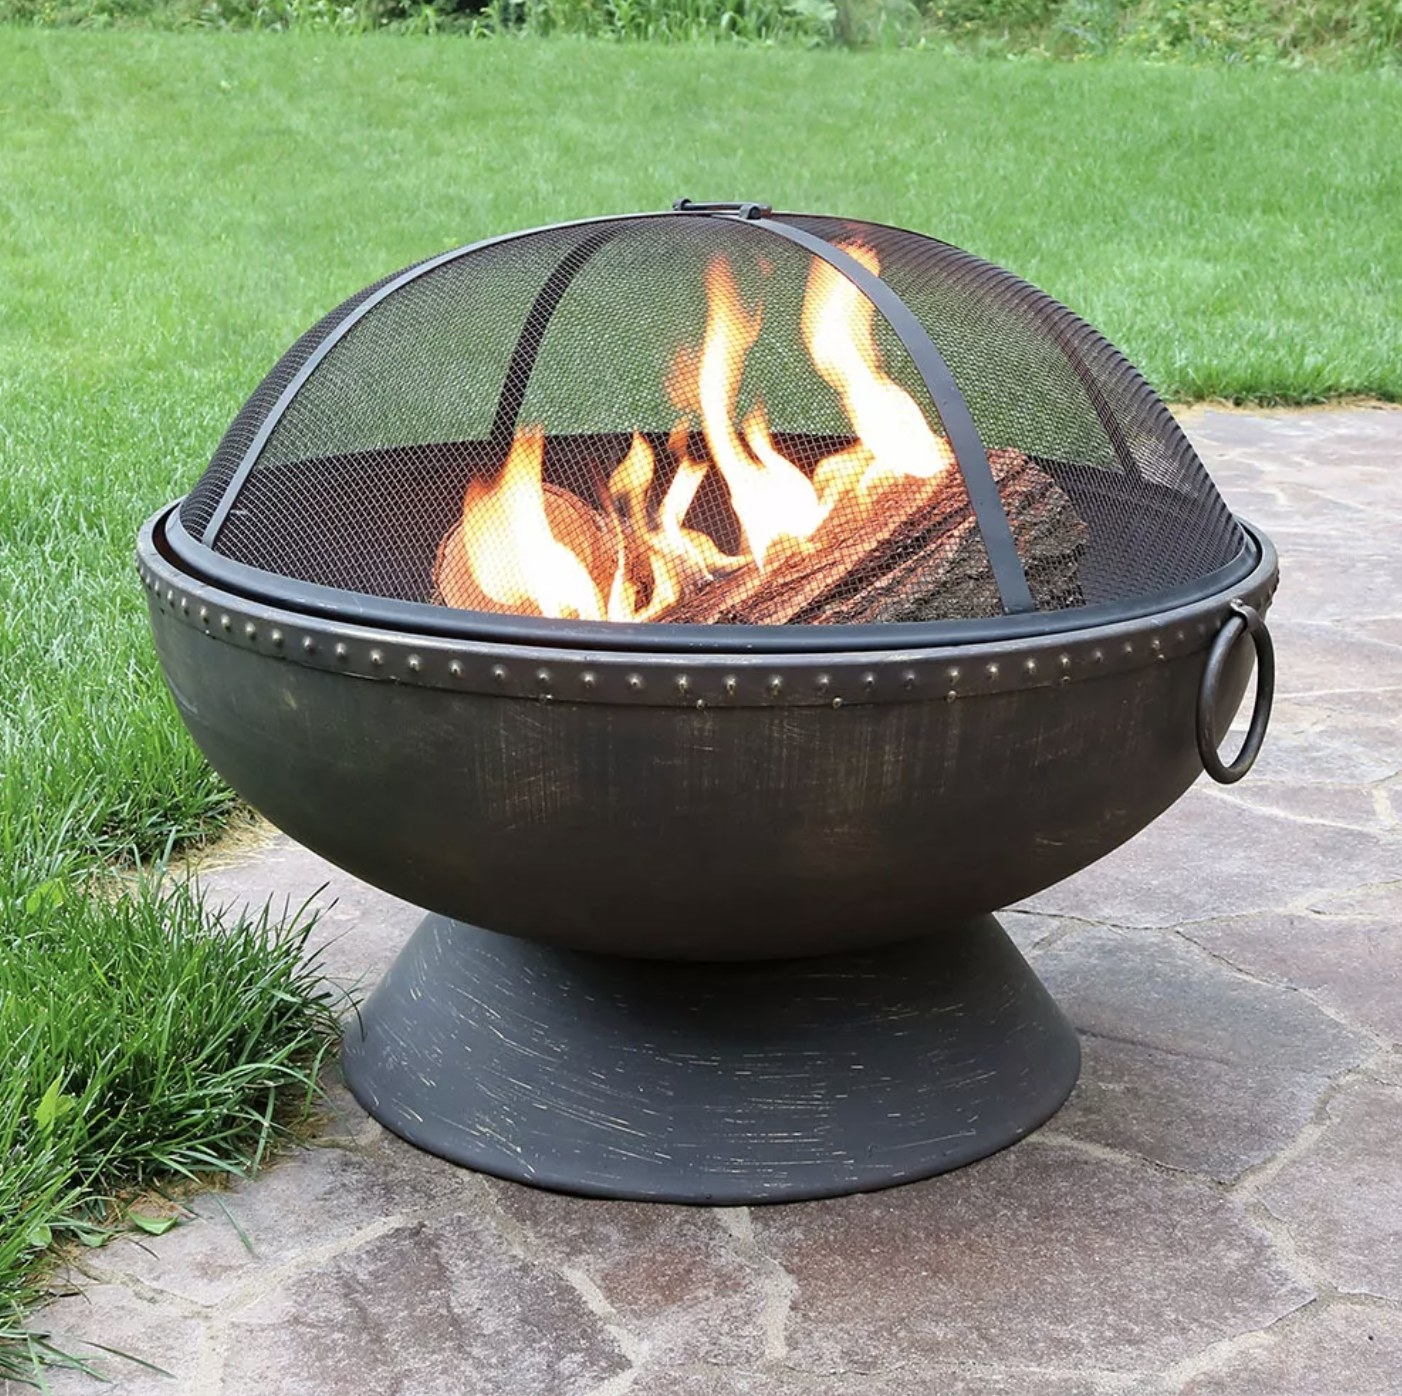 A firepit with fire inside in a backyard